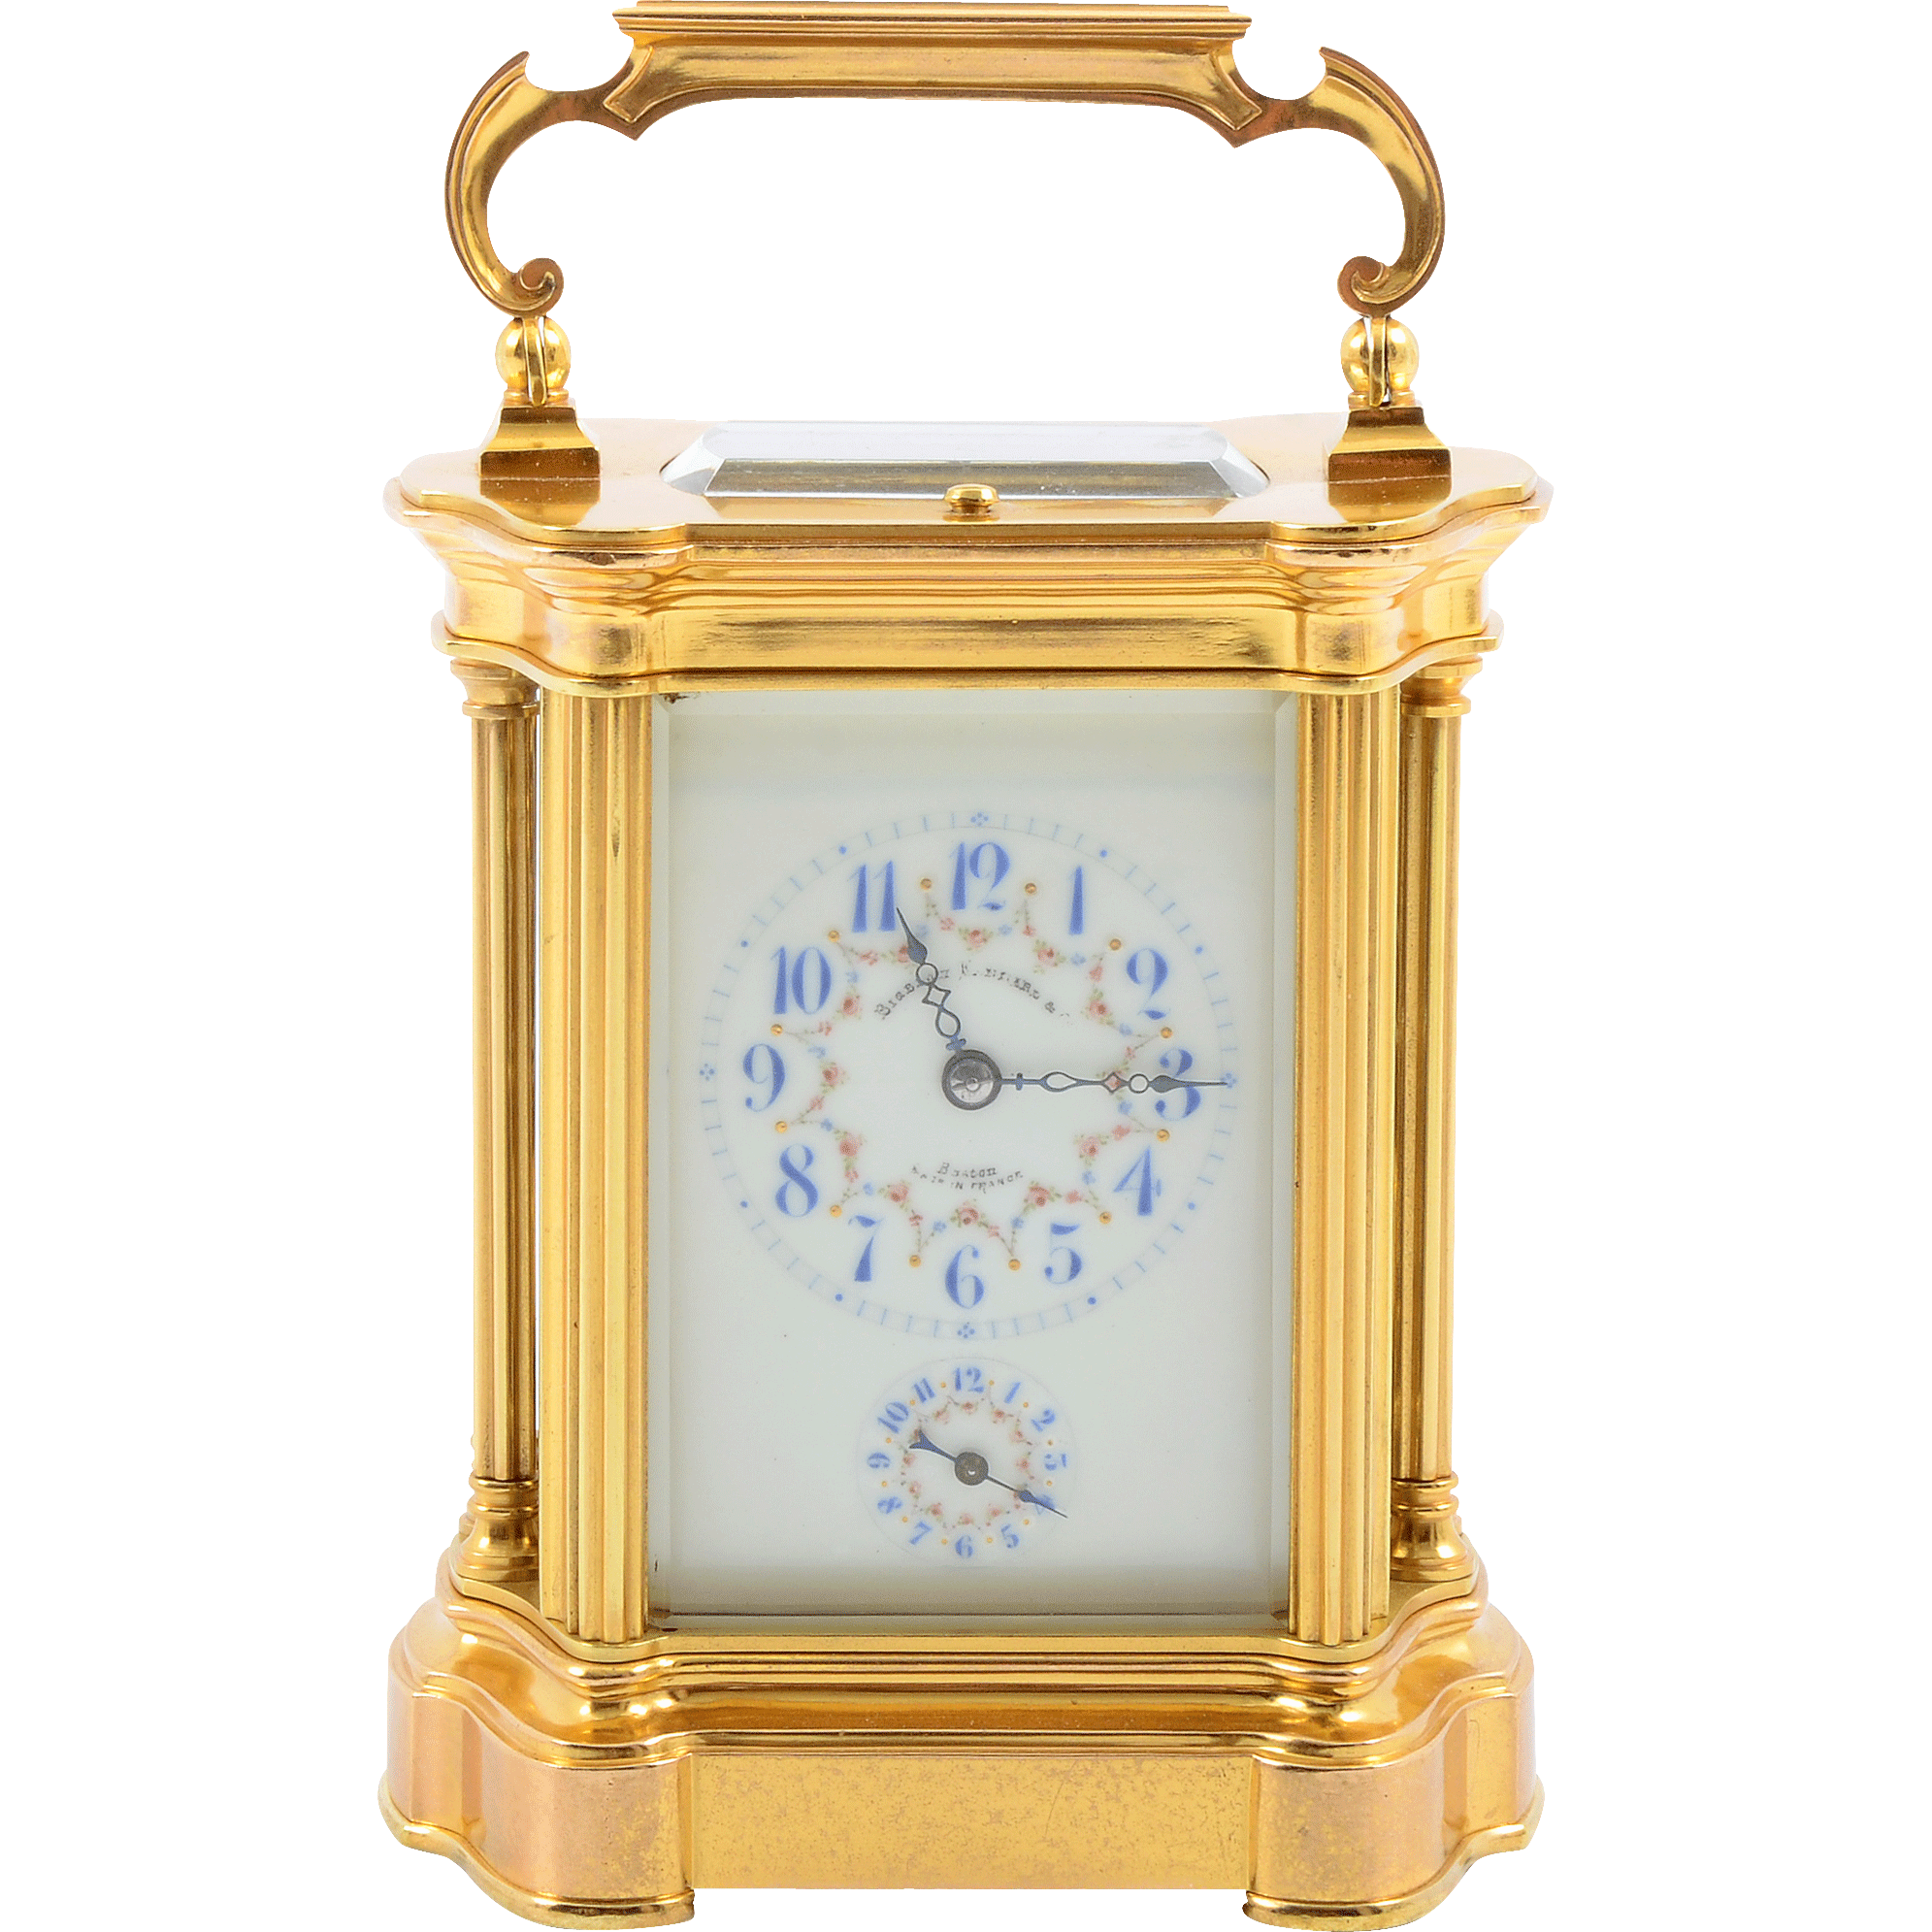 French Carriage Clock Signed Bigelow Kennard & Co of Boston